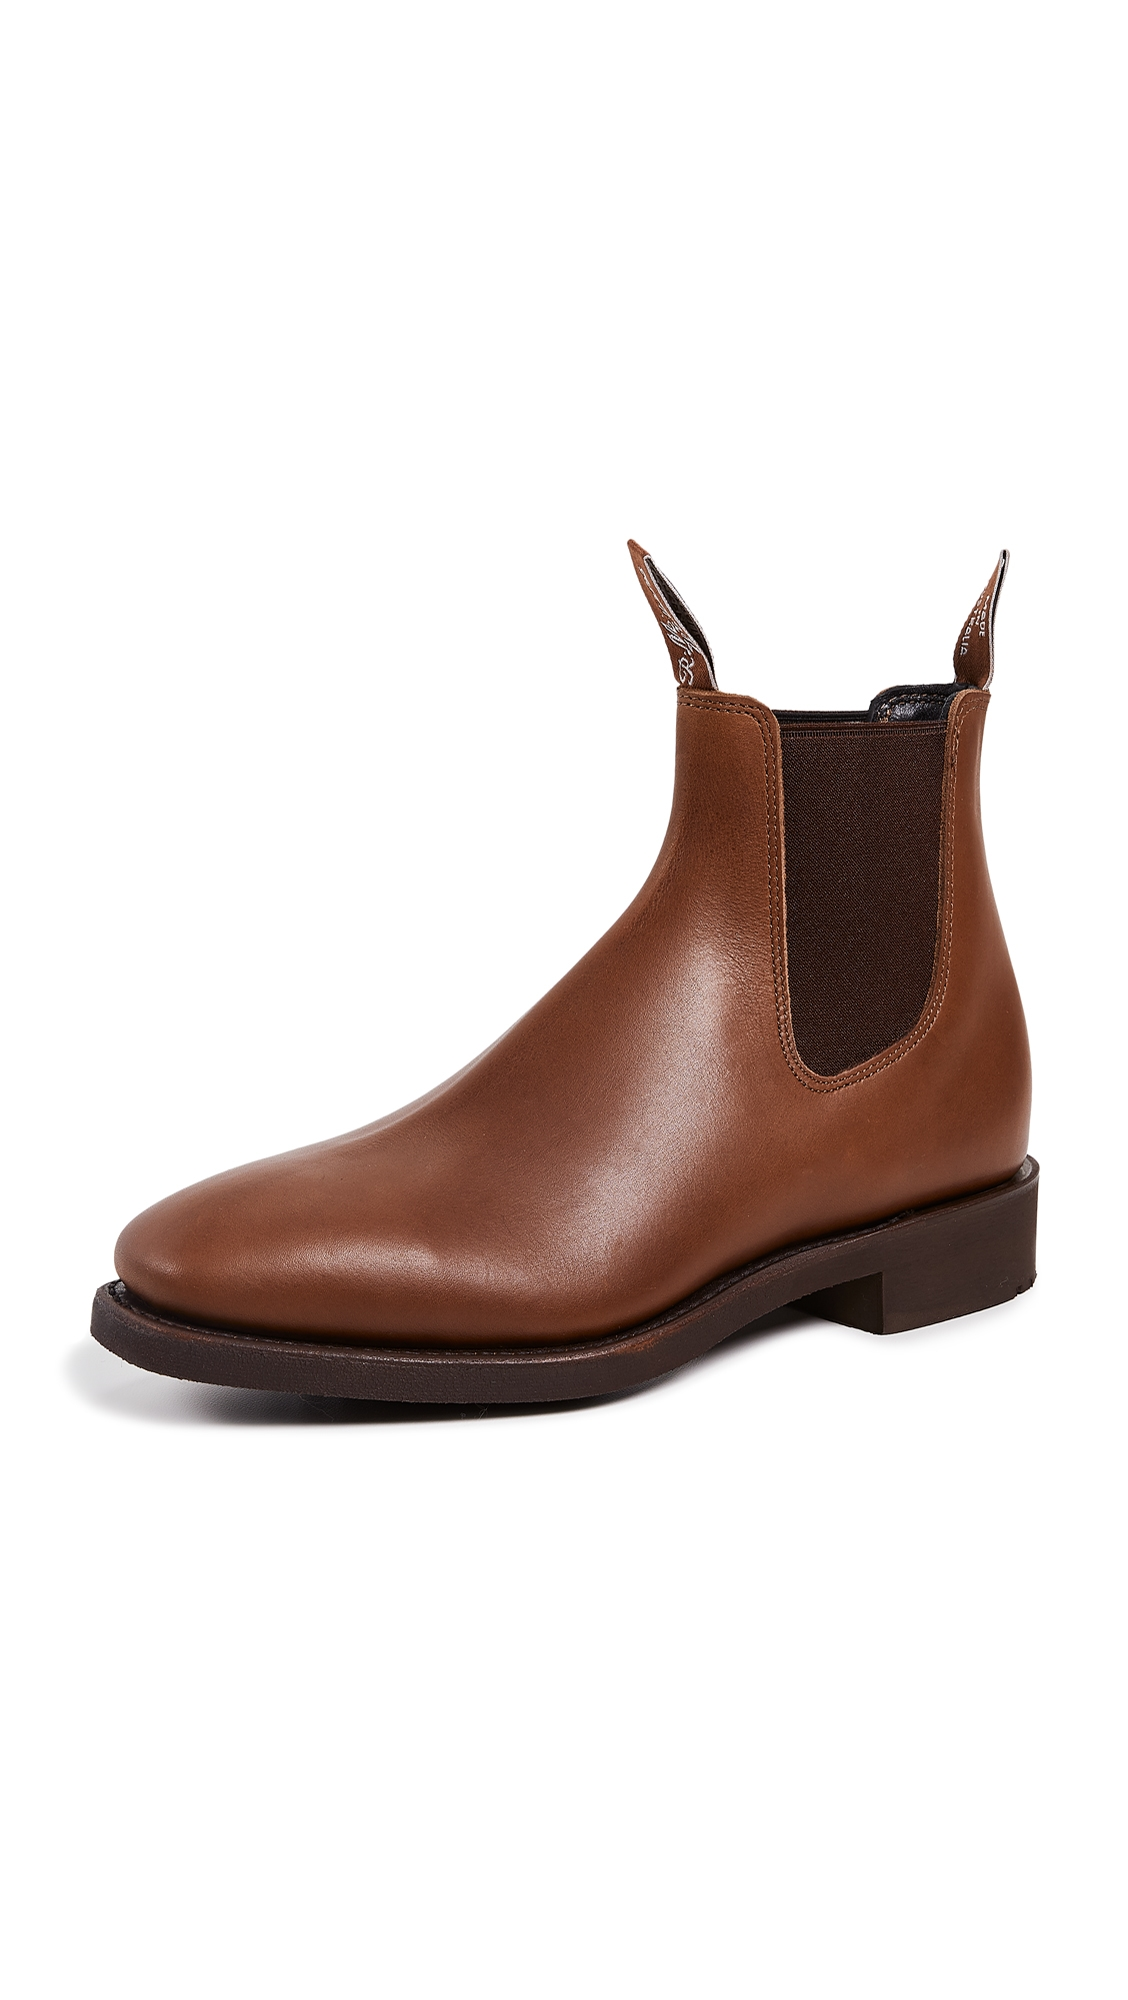 R.M.WILLIAMS Lachlan Boots in Brown